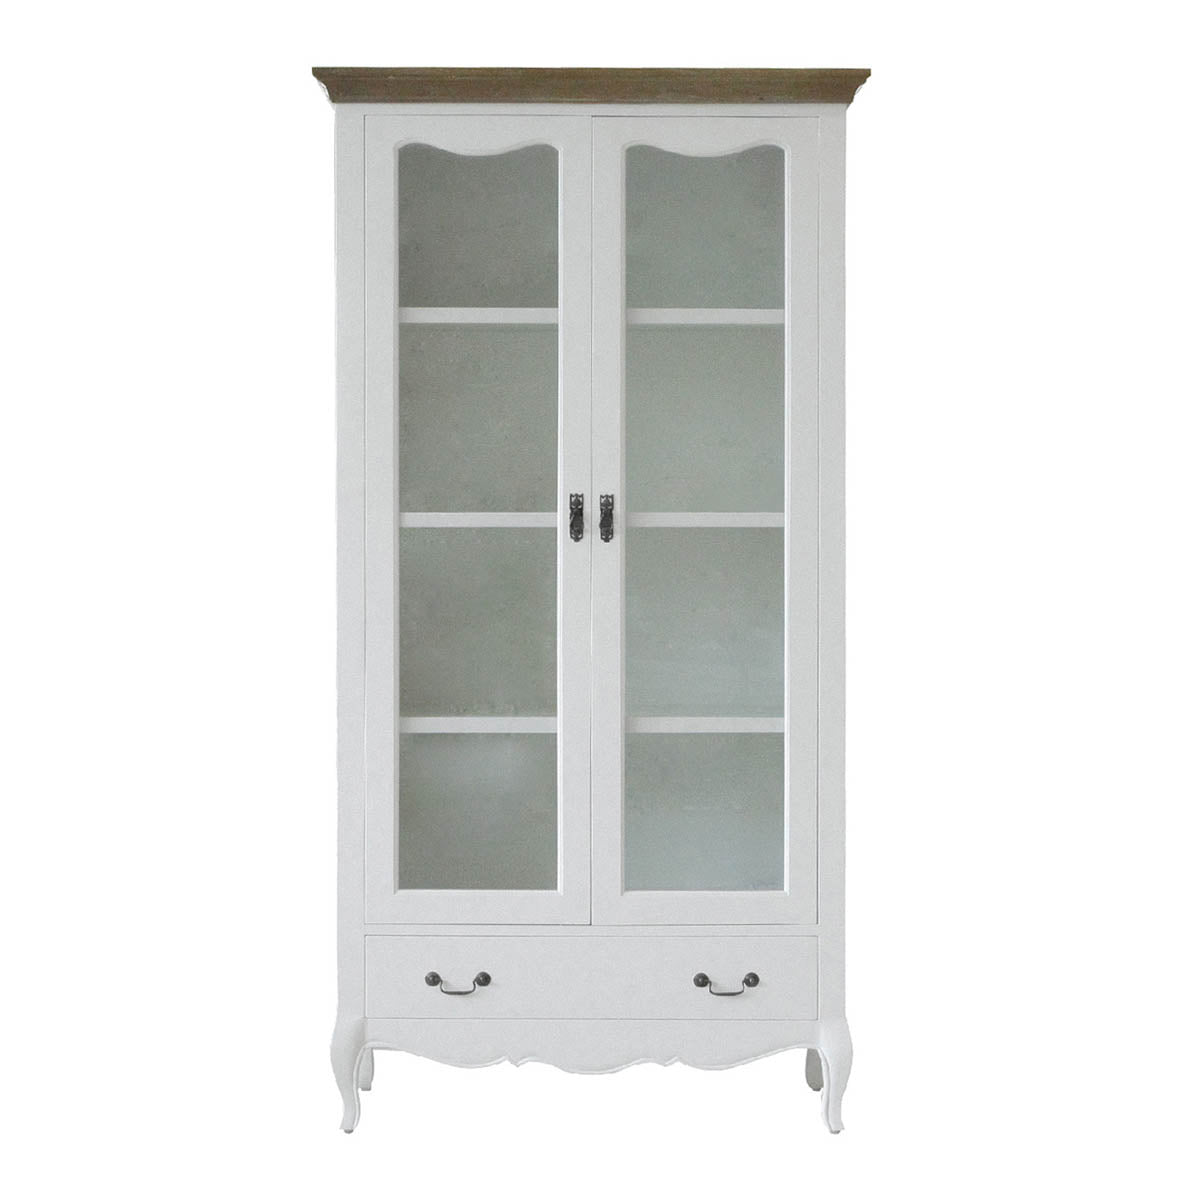 furniture showcase wood white pretty design